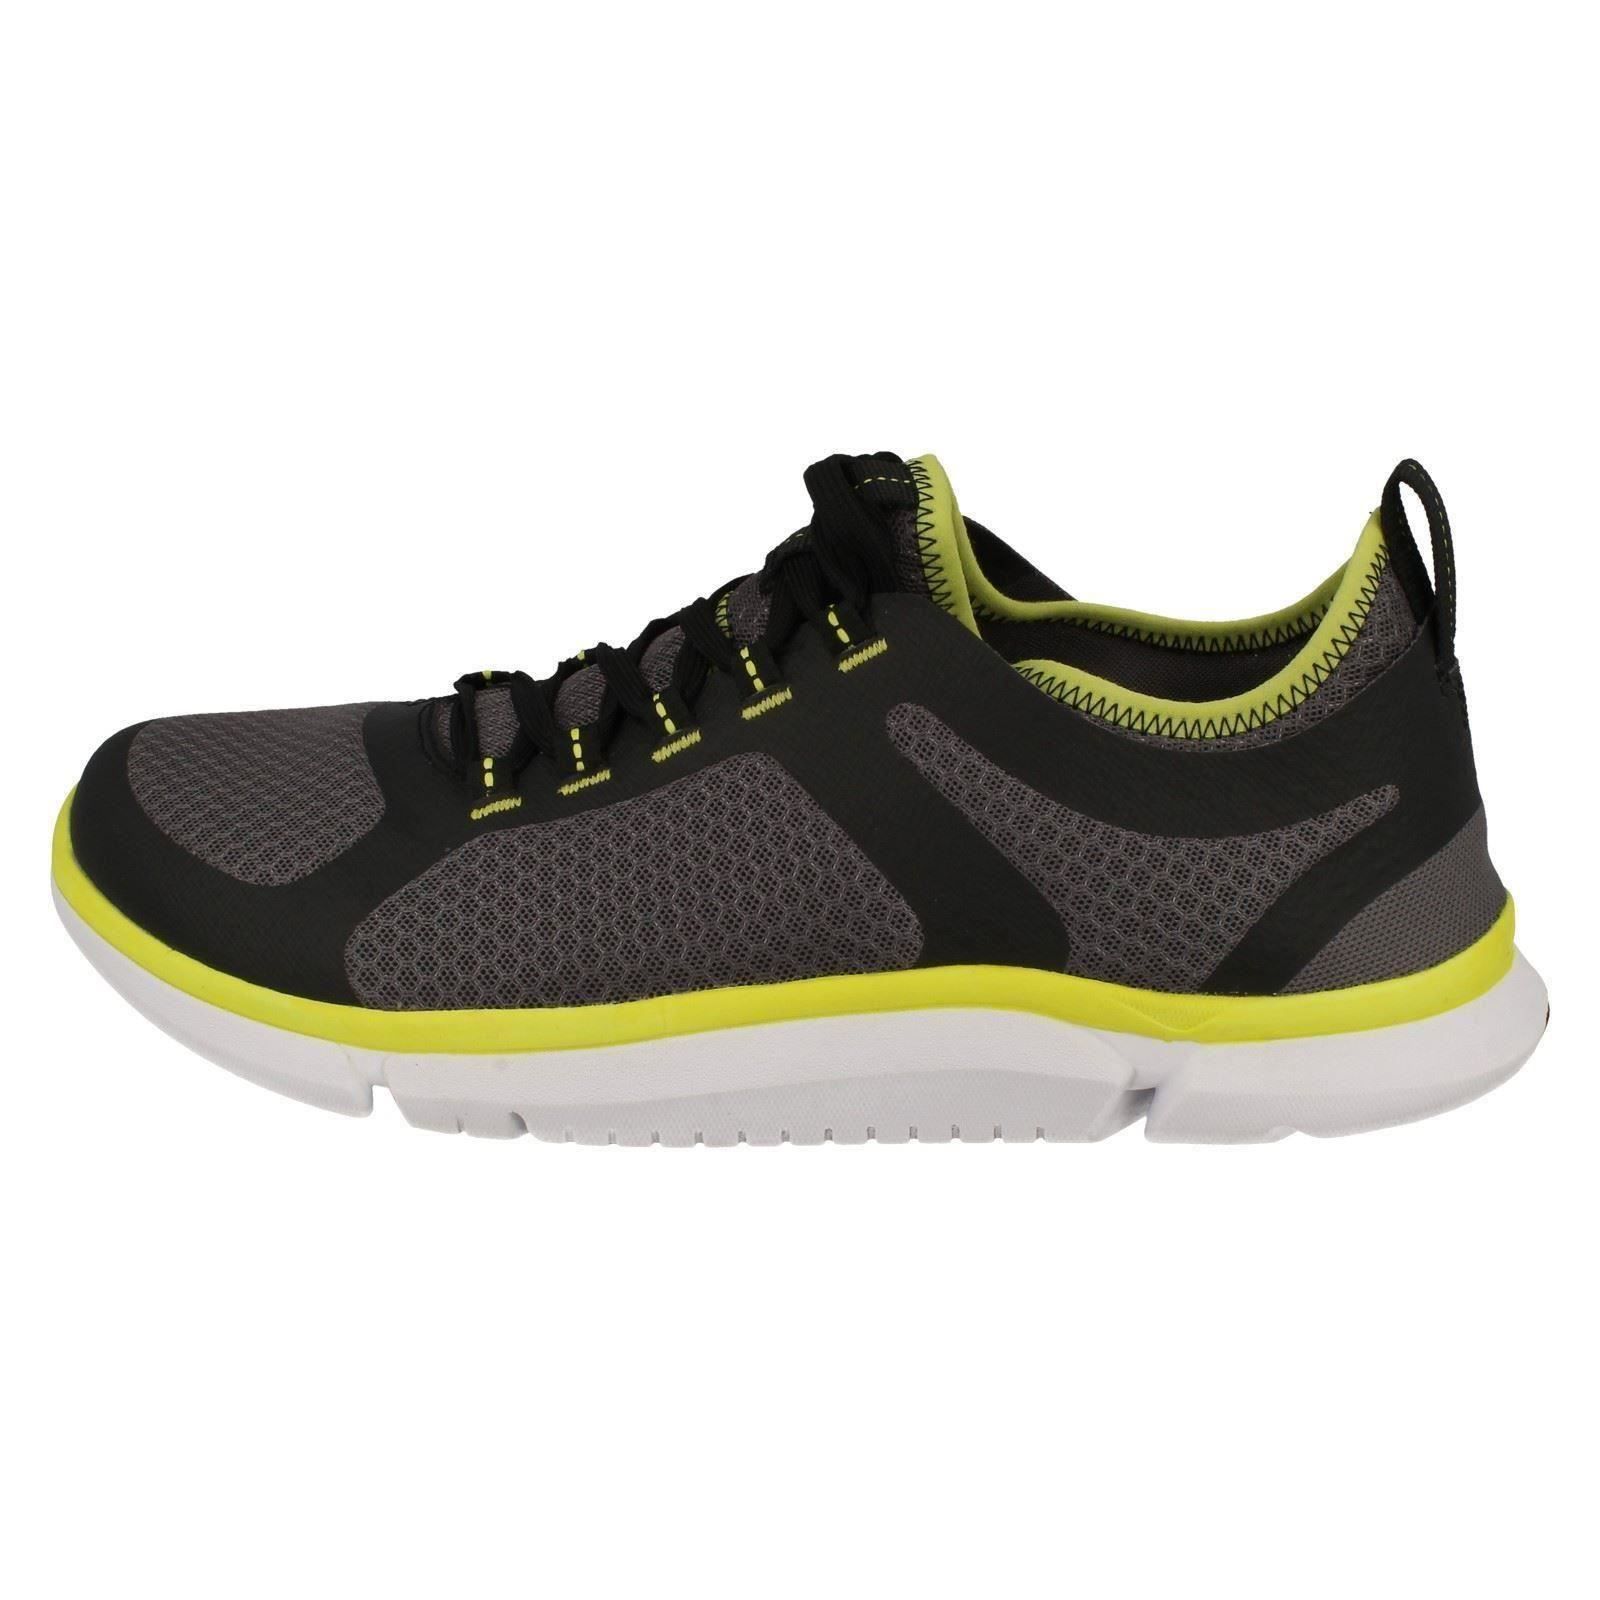 Mens-Clarks-Triken-Active-Casual-Trainers thumbnail 3